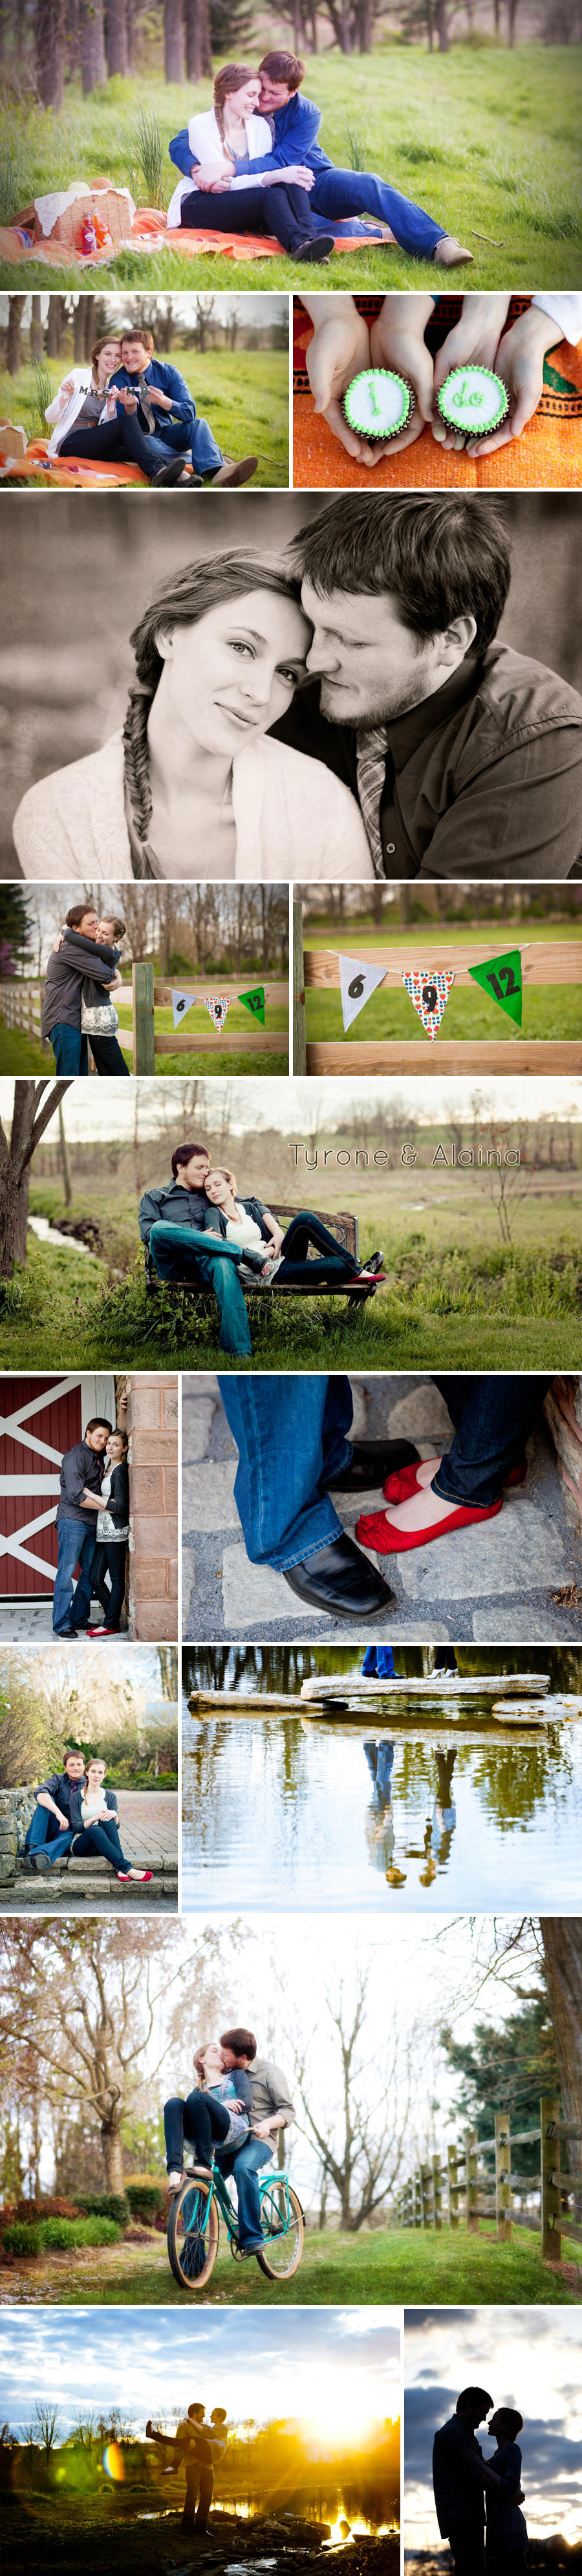 Lebanon, PA engagement photography session